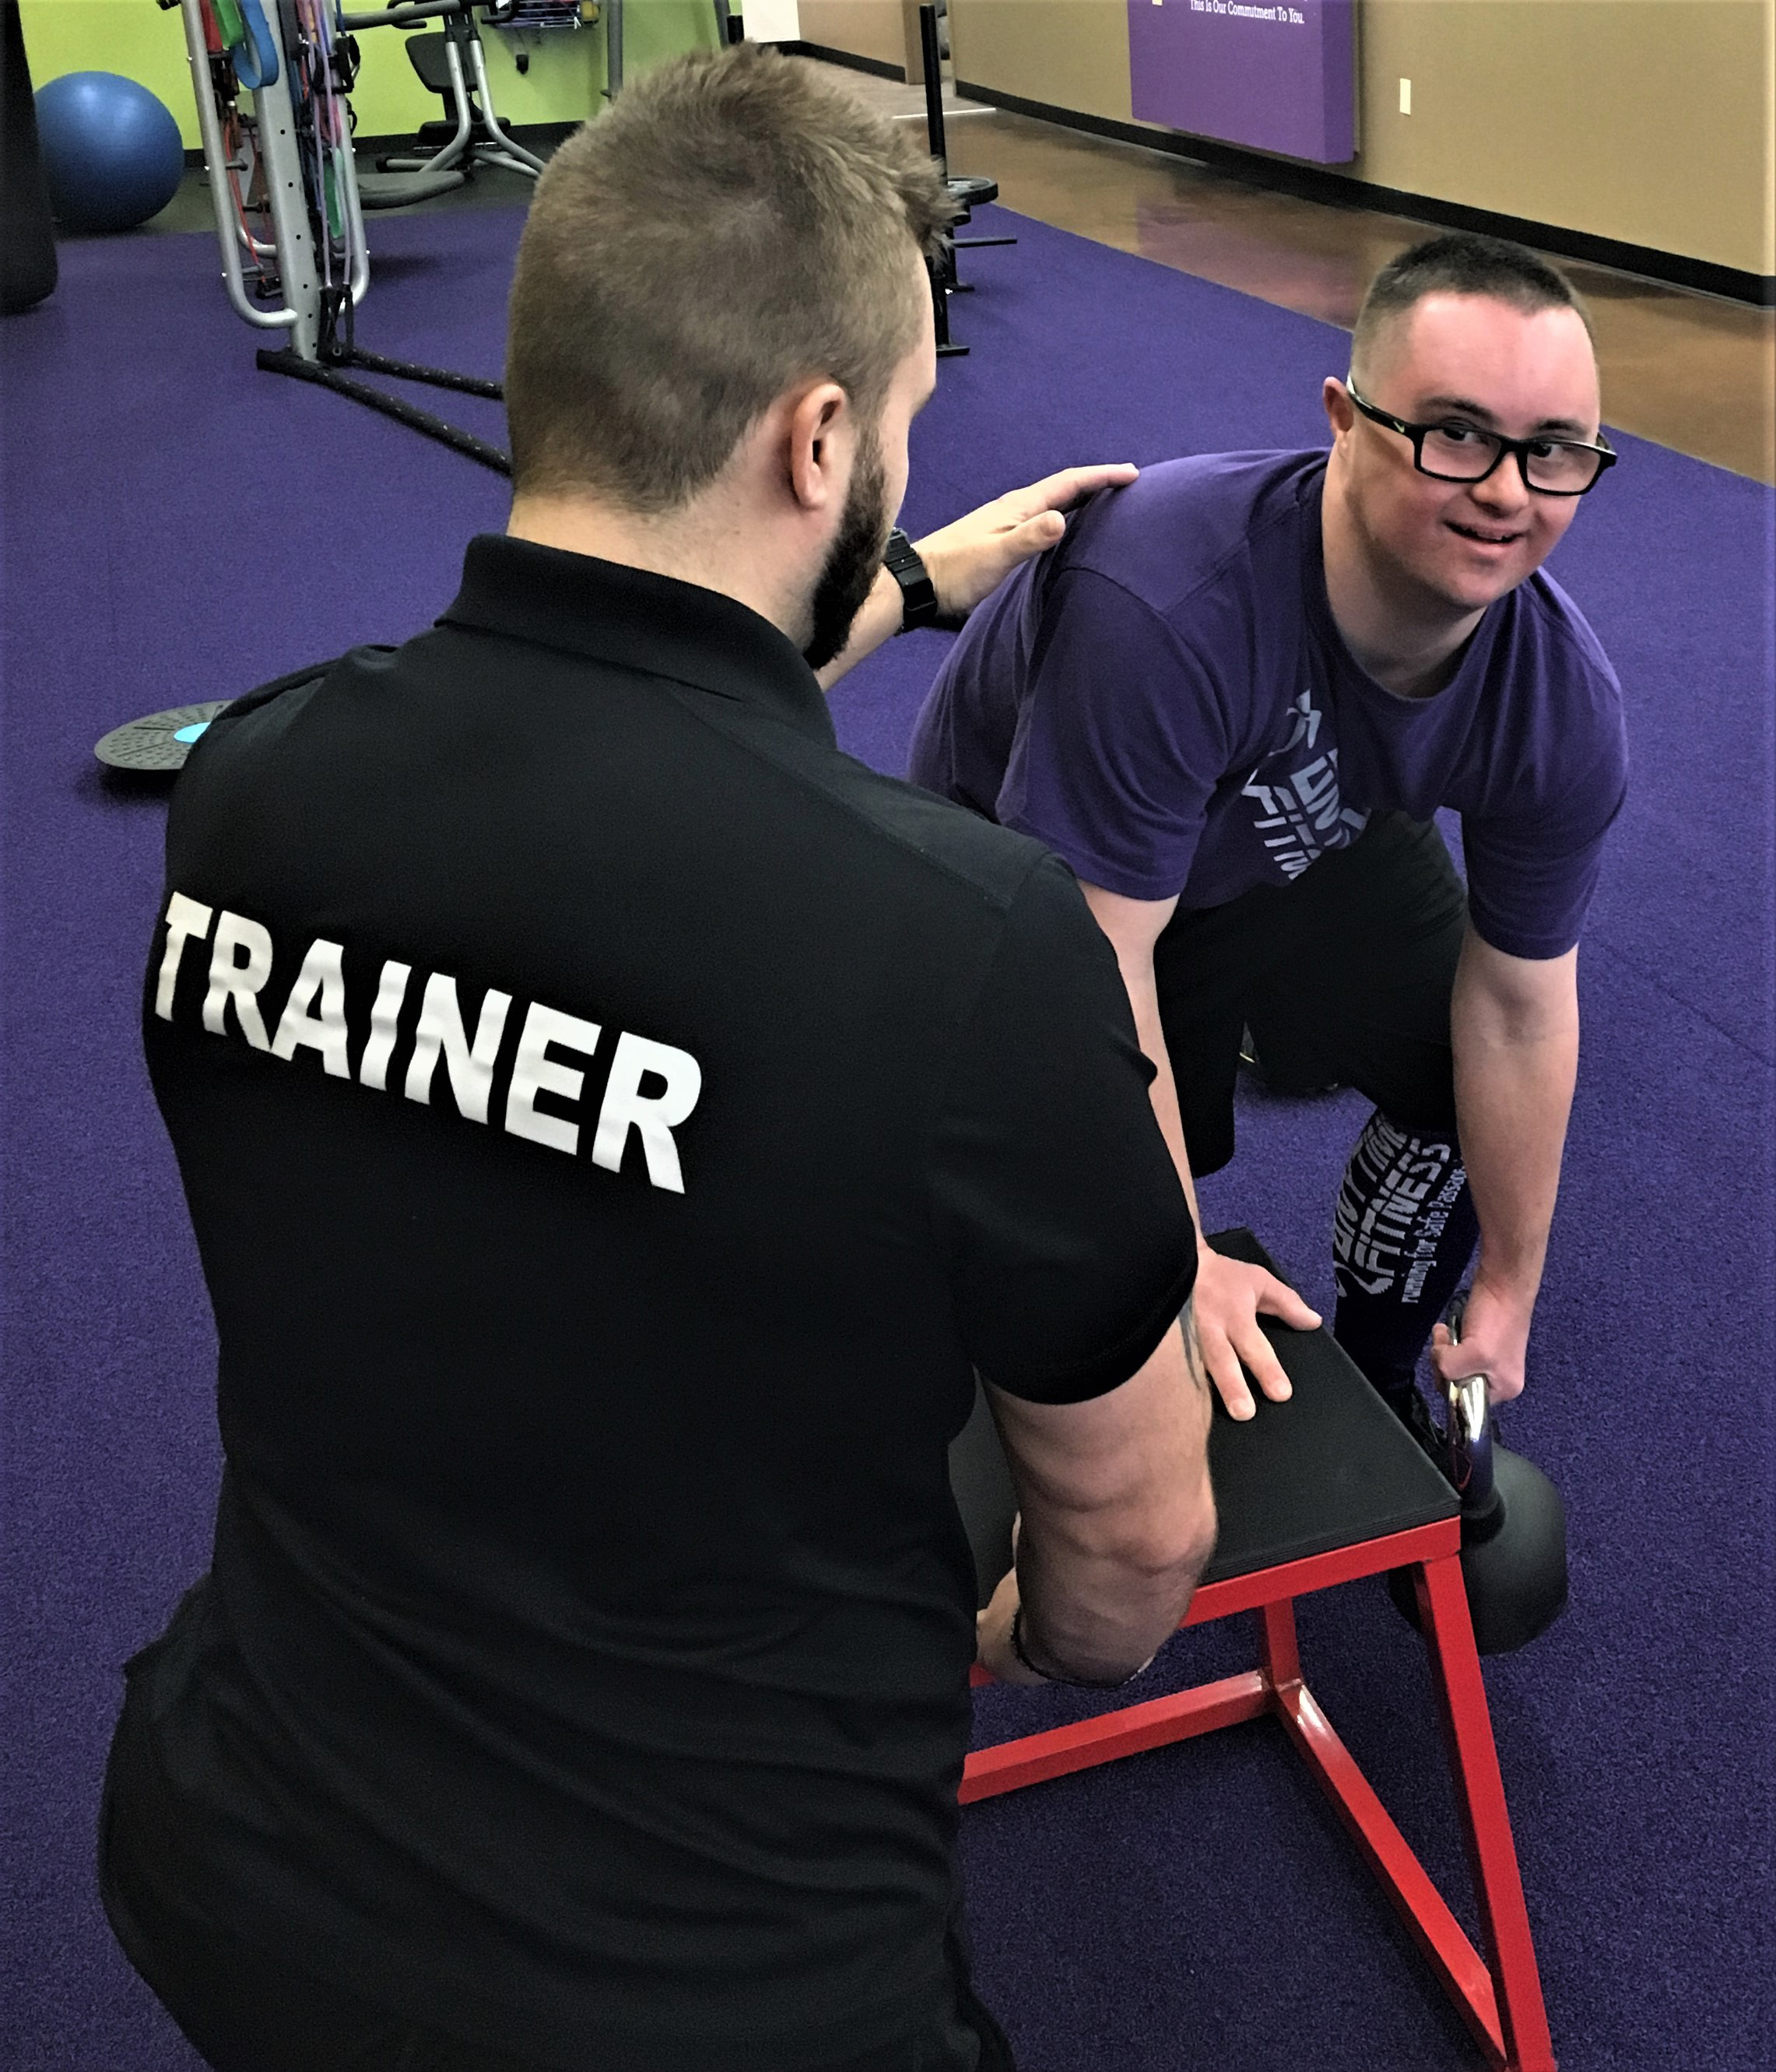 Cole Calvert trains at Anytime Fitness in Bellbrook, OH. Cole also plays on the Montgomery County Cougars Special Olympics Basketball Team.